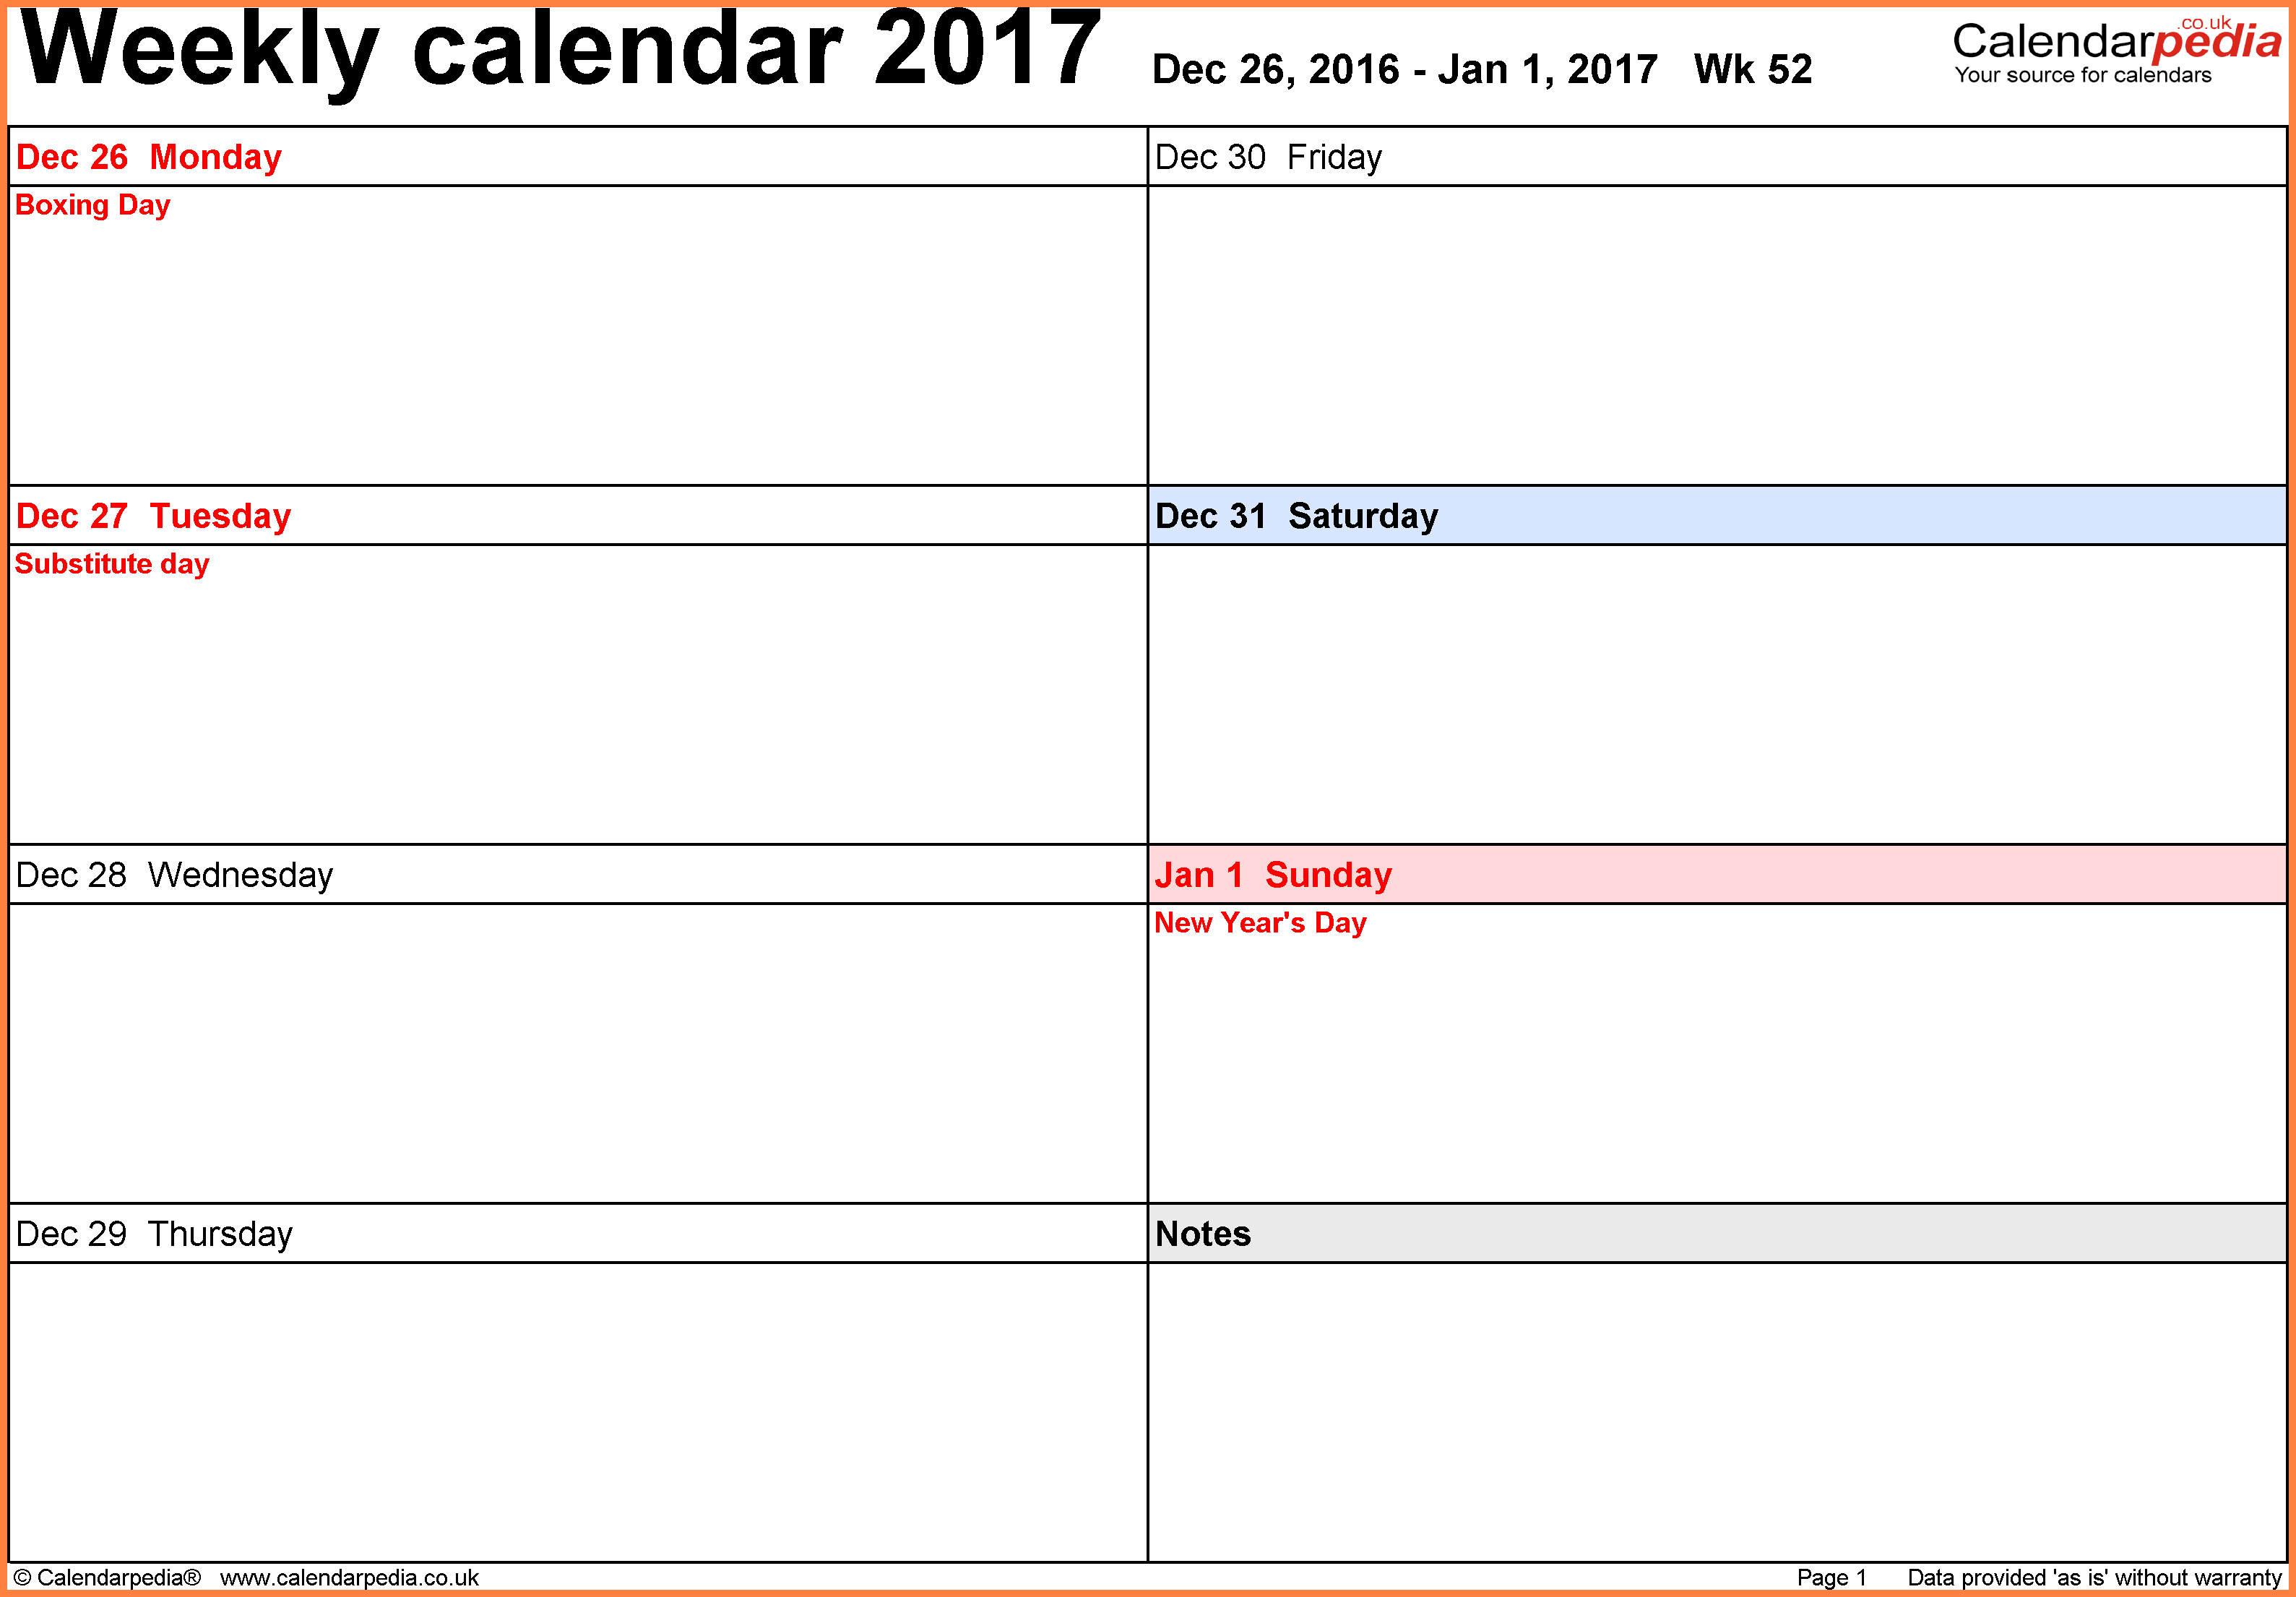 7+ Free Online Weekly Calendars To Print | Andrew Gunsberg intended for Free Online Weekly Calendar